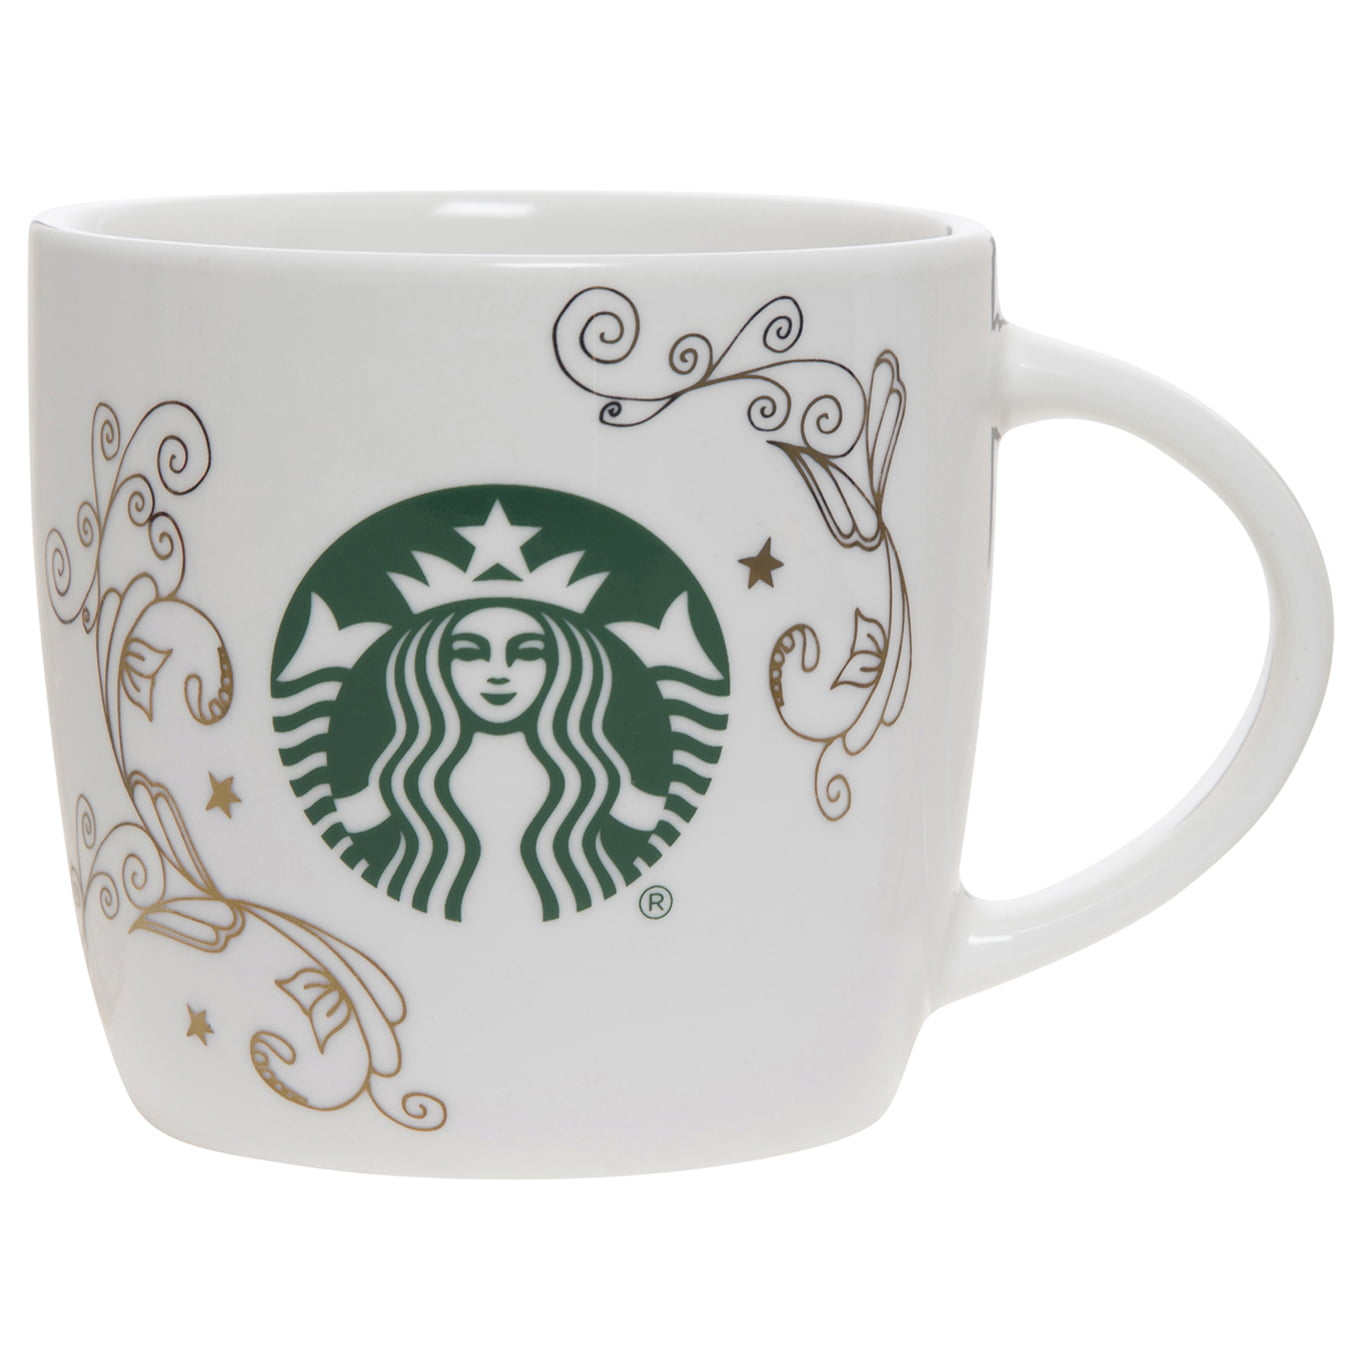 Starbucks Ceramic 14 Ounce White Swirl Mug